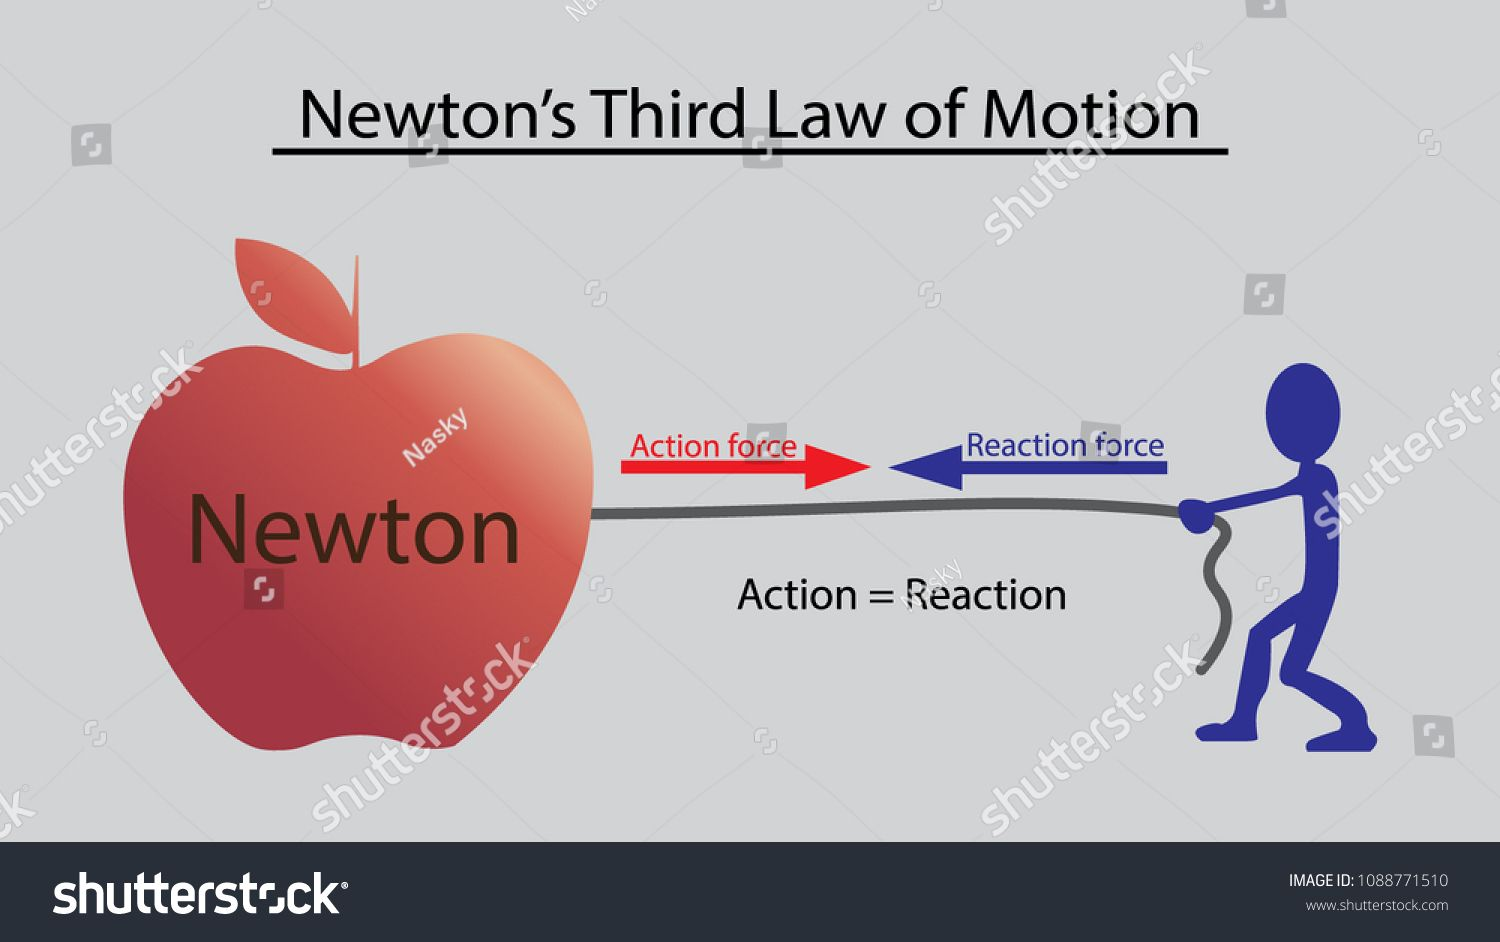 Newton S Third Law Of Motion Concept Design Law Newton Motion Design In 2021 Newtons Third Law Newtons Third Law Of Motion Concept Design